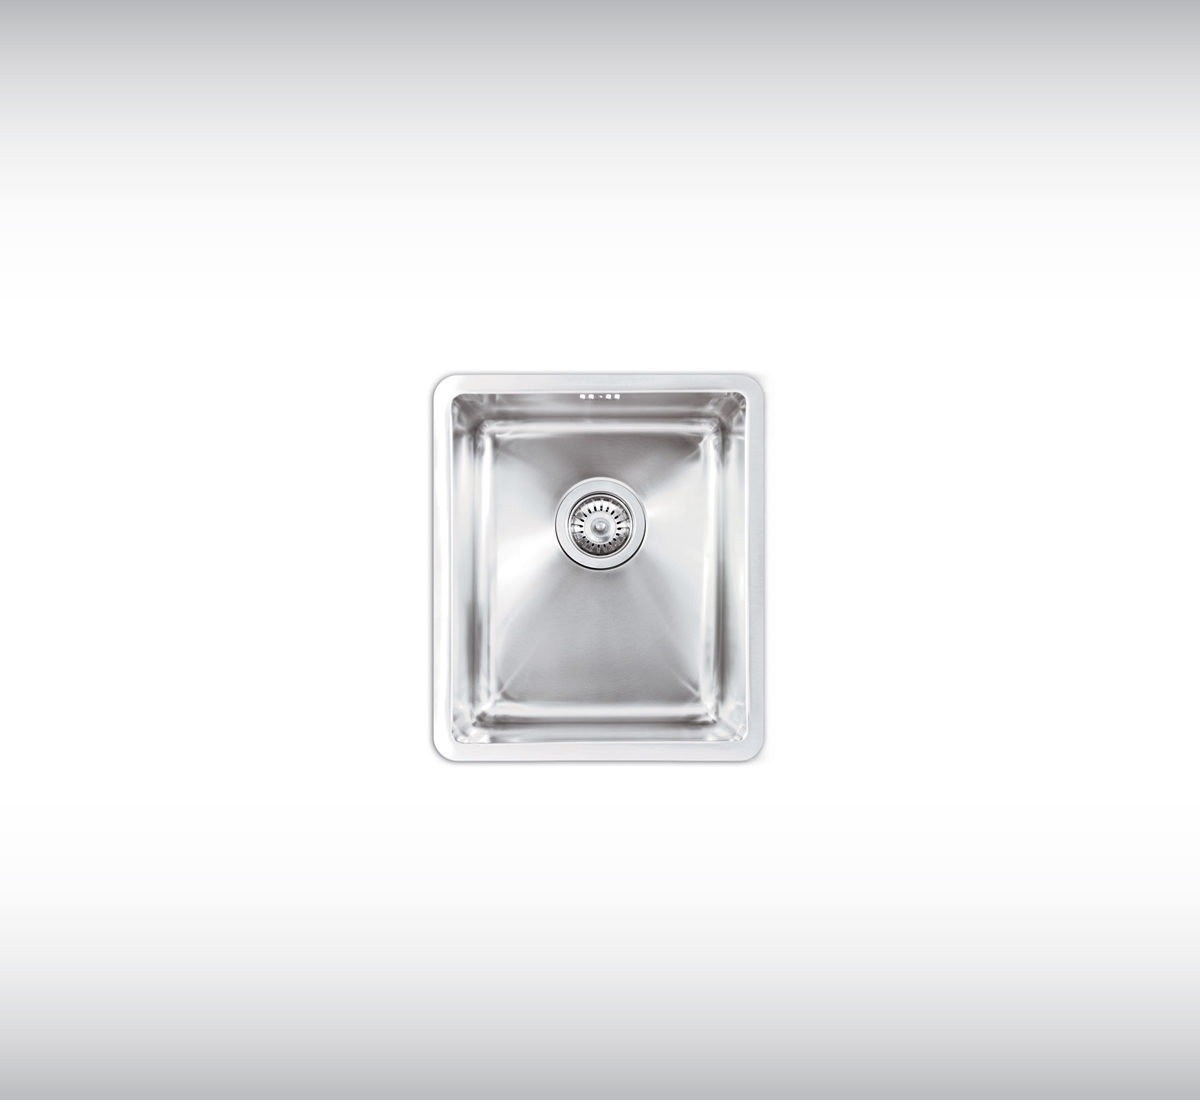 Stainless Steel Sink GINO-384